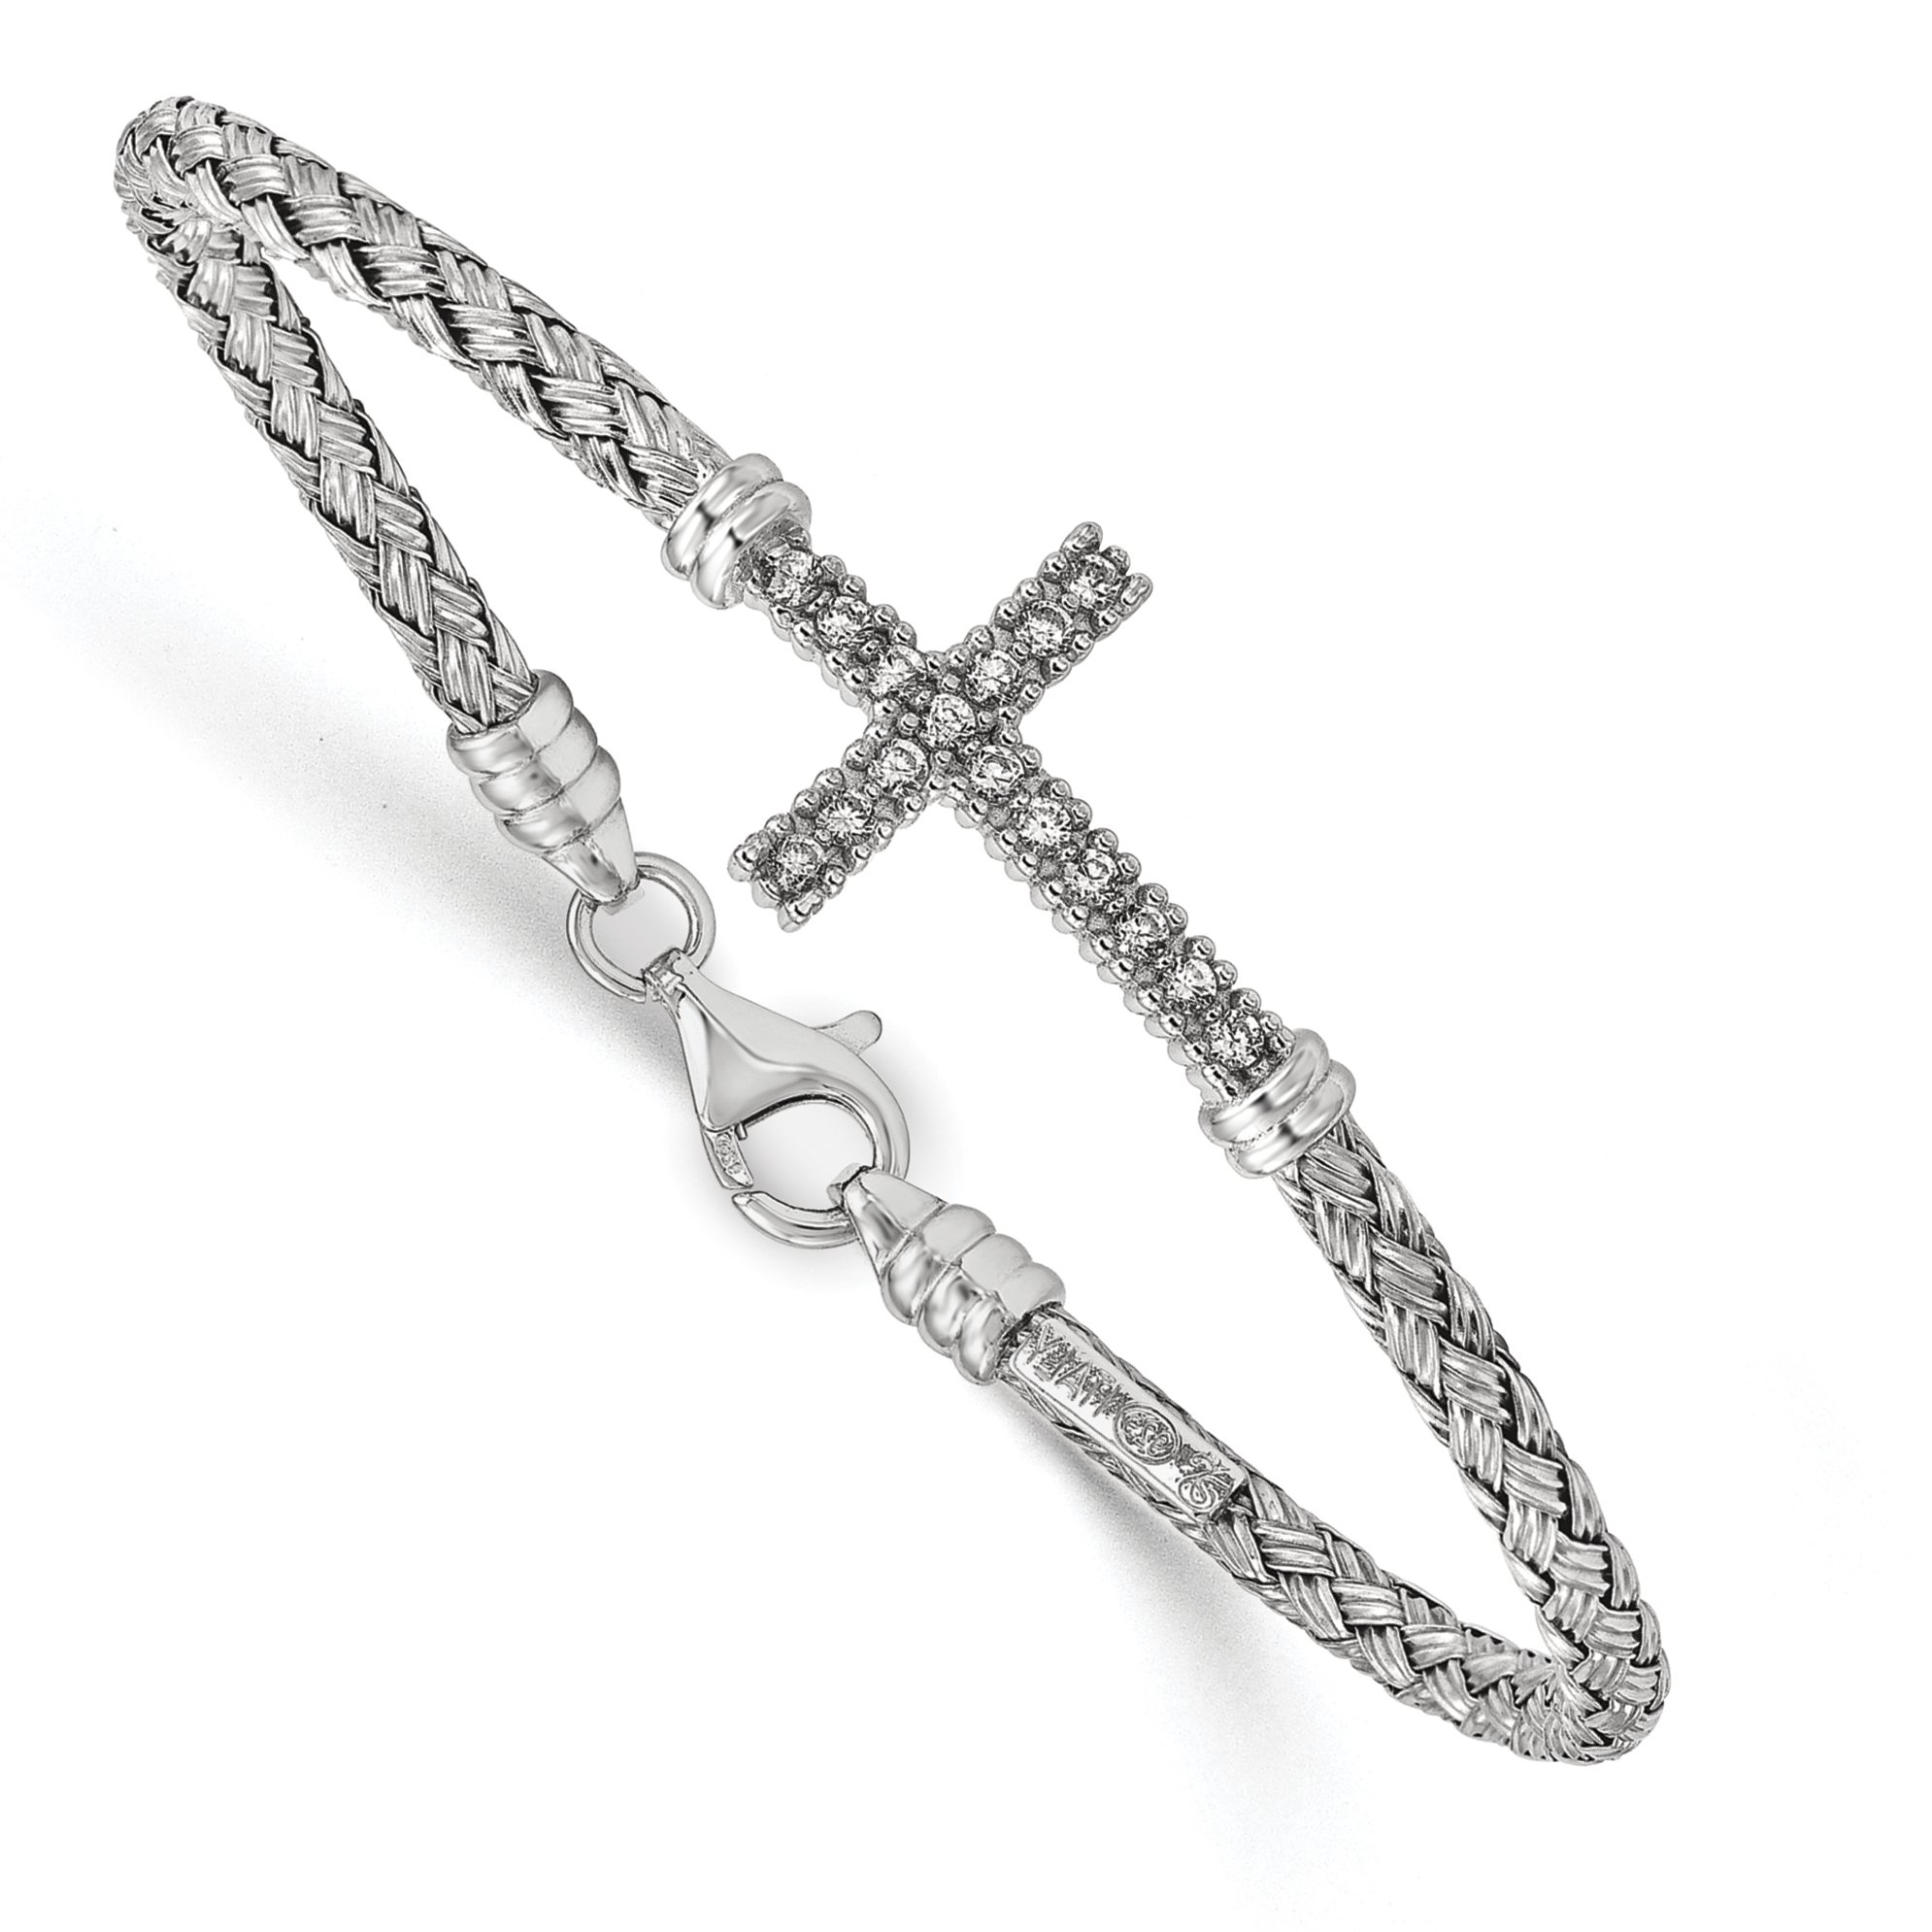 ICE CARATS 925 Sterling Silver Cubic Zirconia Cz Italian Cross Religious Bangle Bracelet Cuff Expandable Stackable Fine Jewelry Gift Set For Women Heart